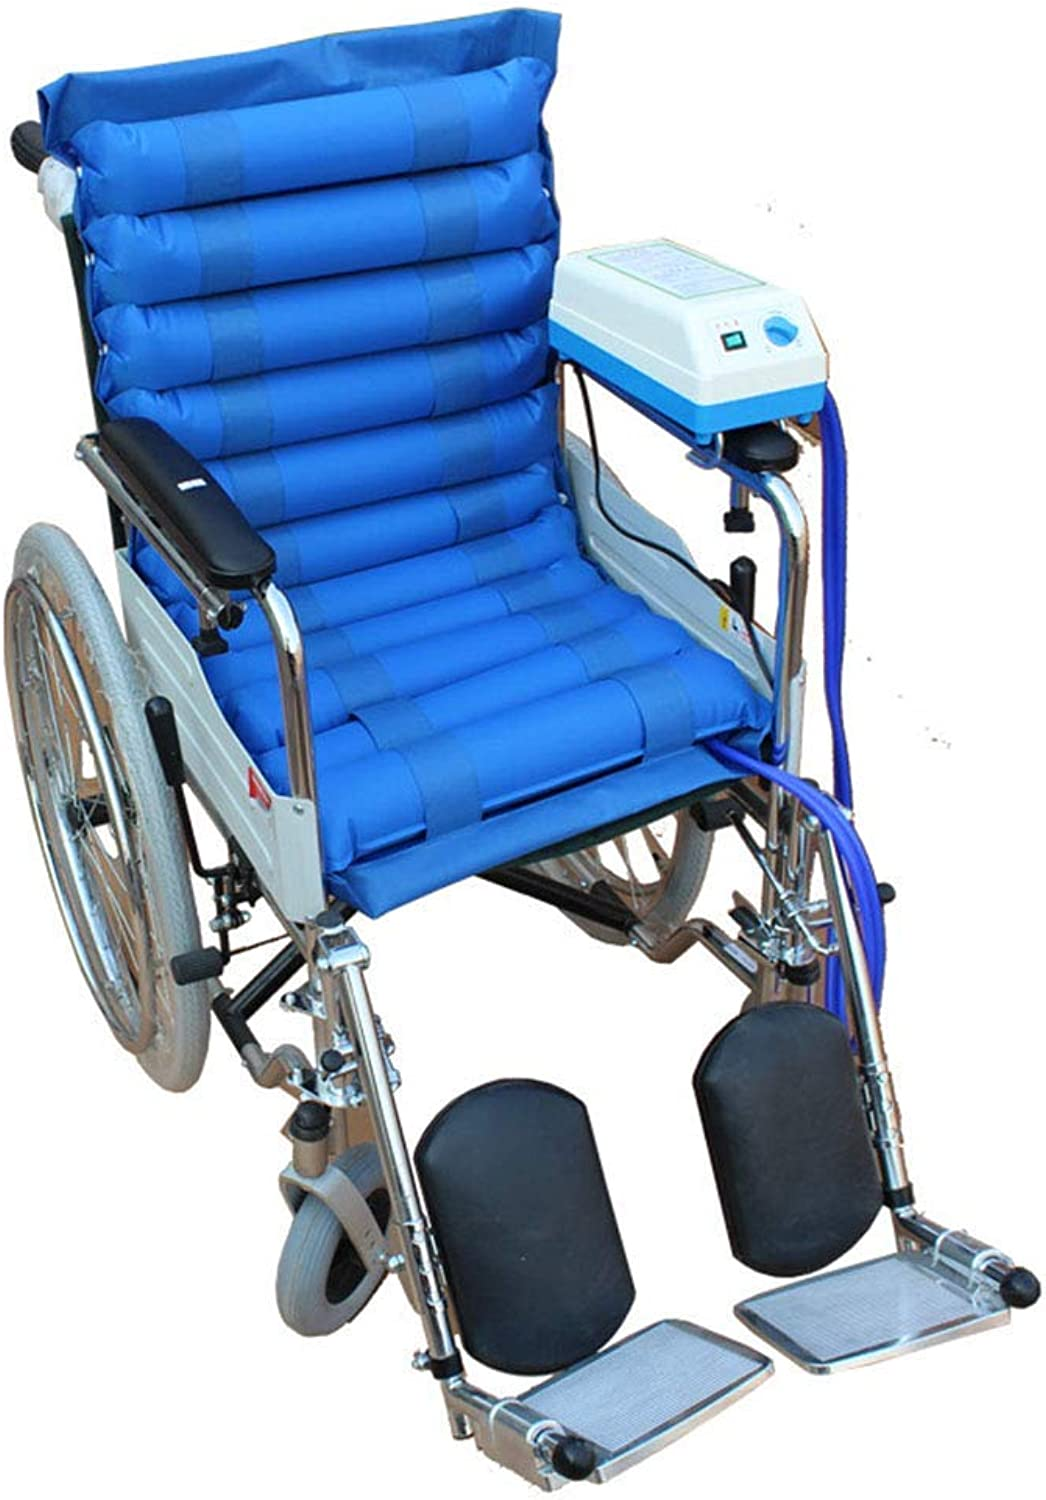 Medical Air Inflatable Seat Cushion with Pump System, Wheelchair Air Alternating Pad Overlay